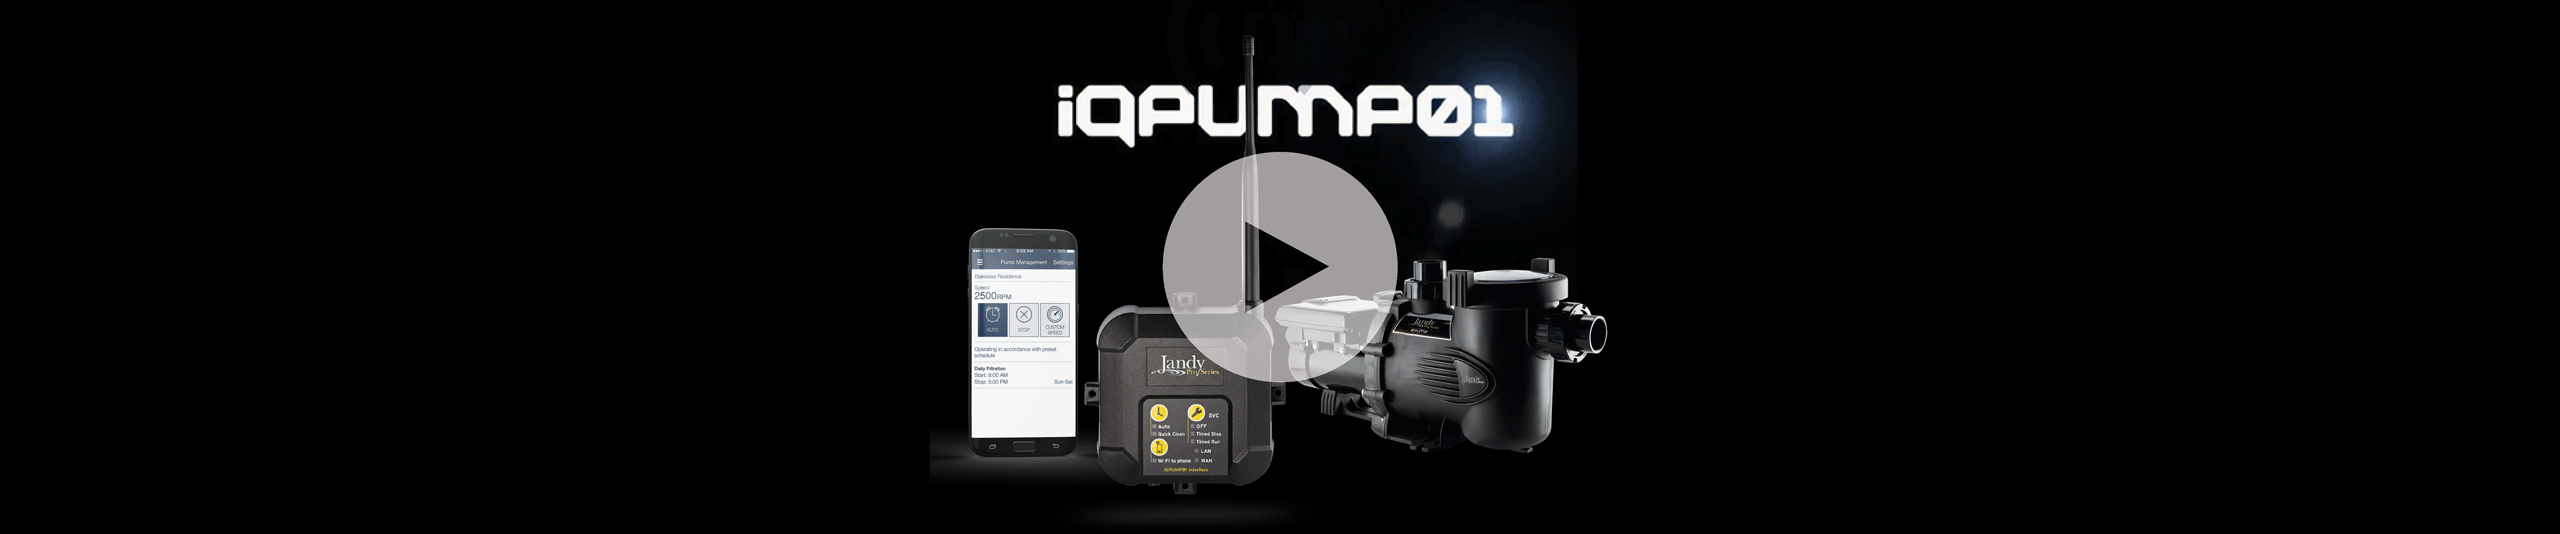 iQPUMP01 Pool Pumps Automation Video